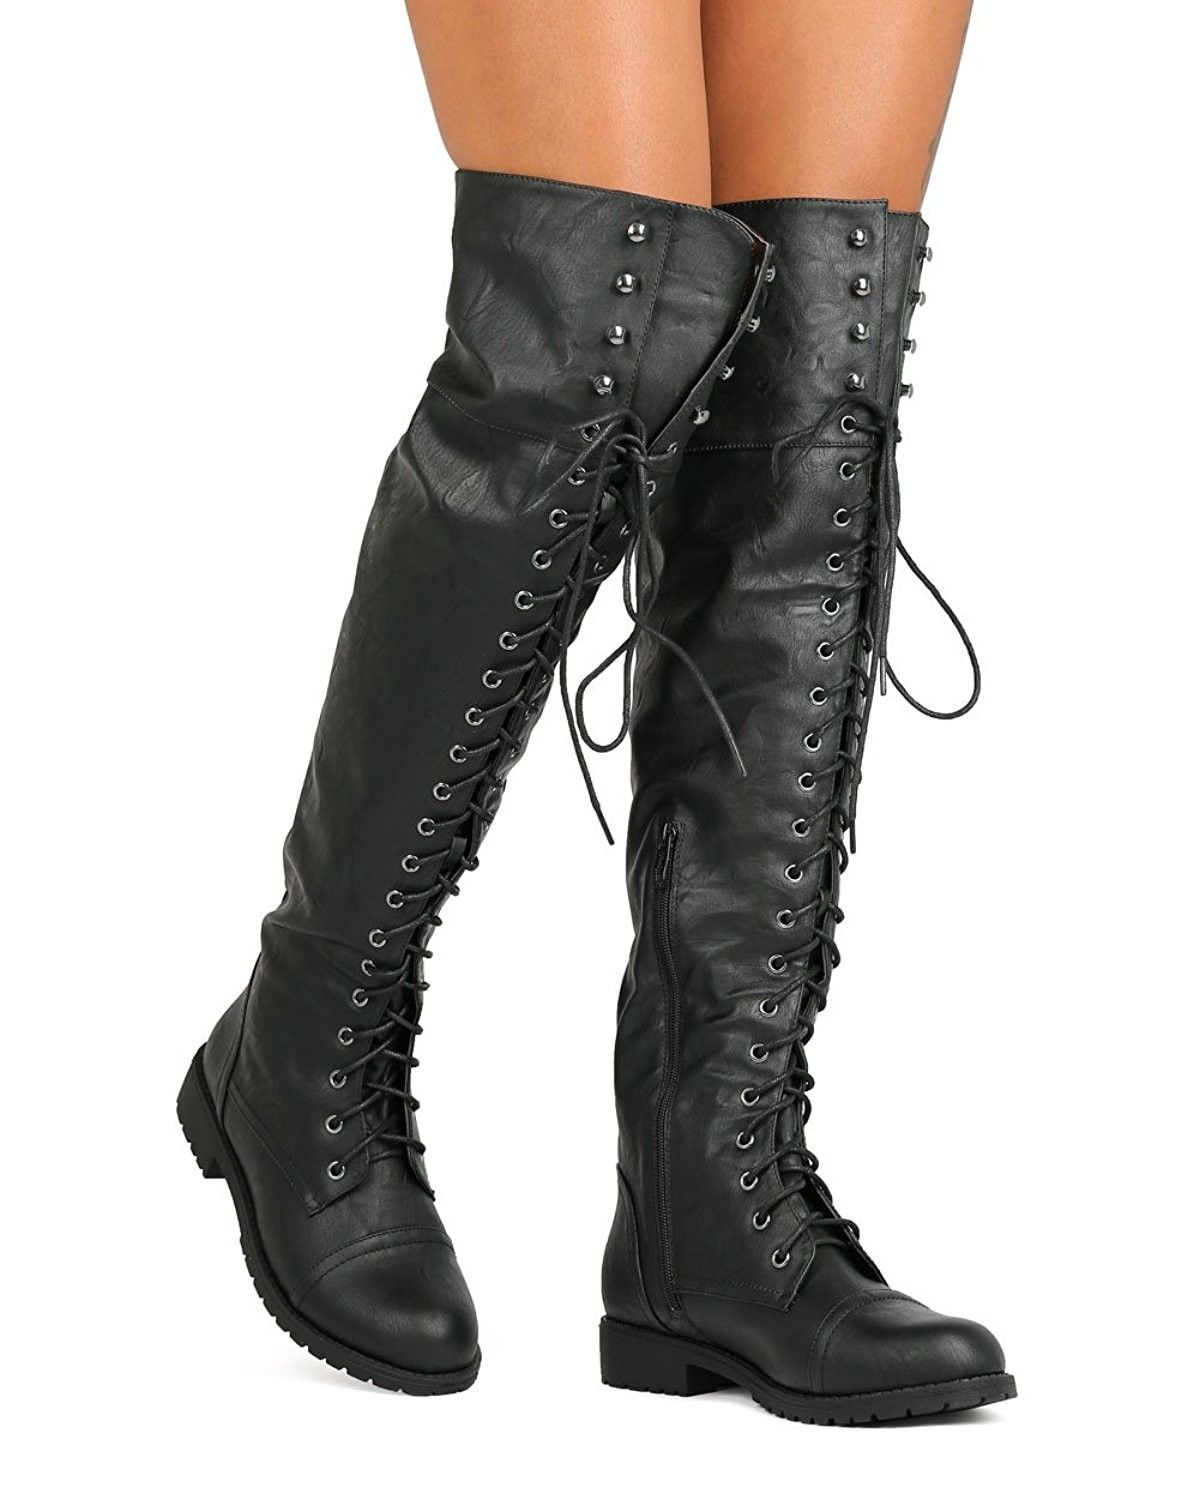 Knee Lace Up Combat Boot - Black